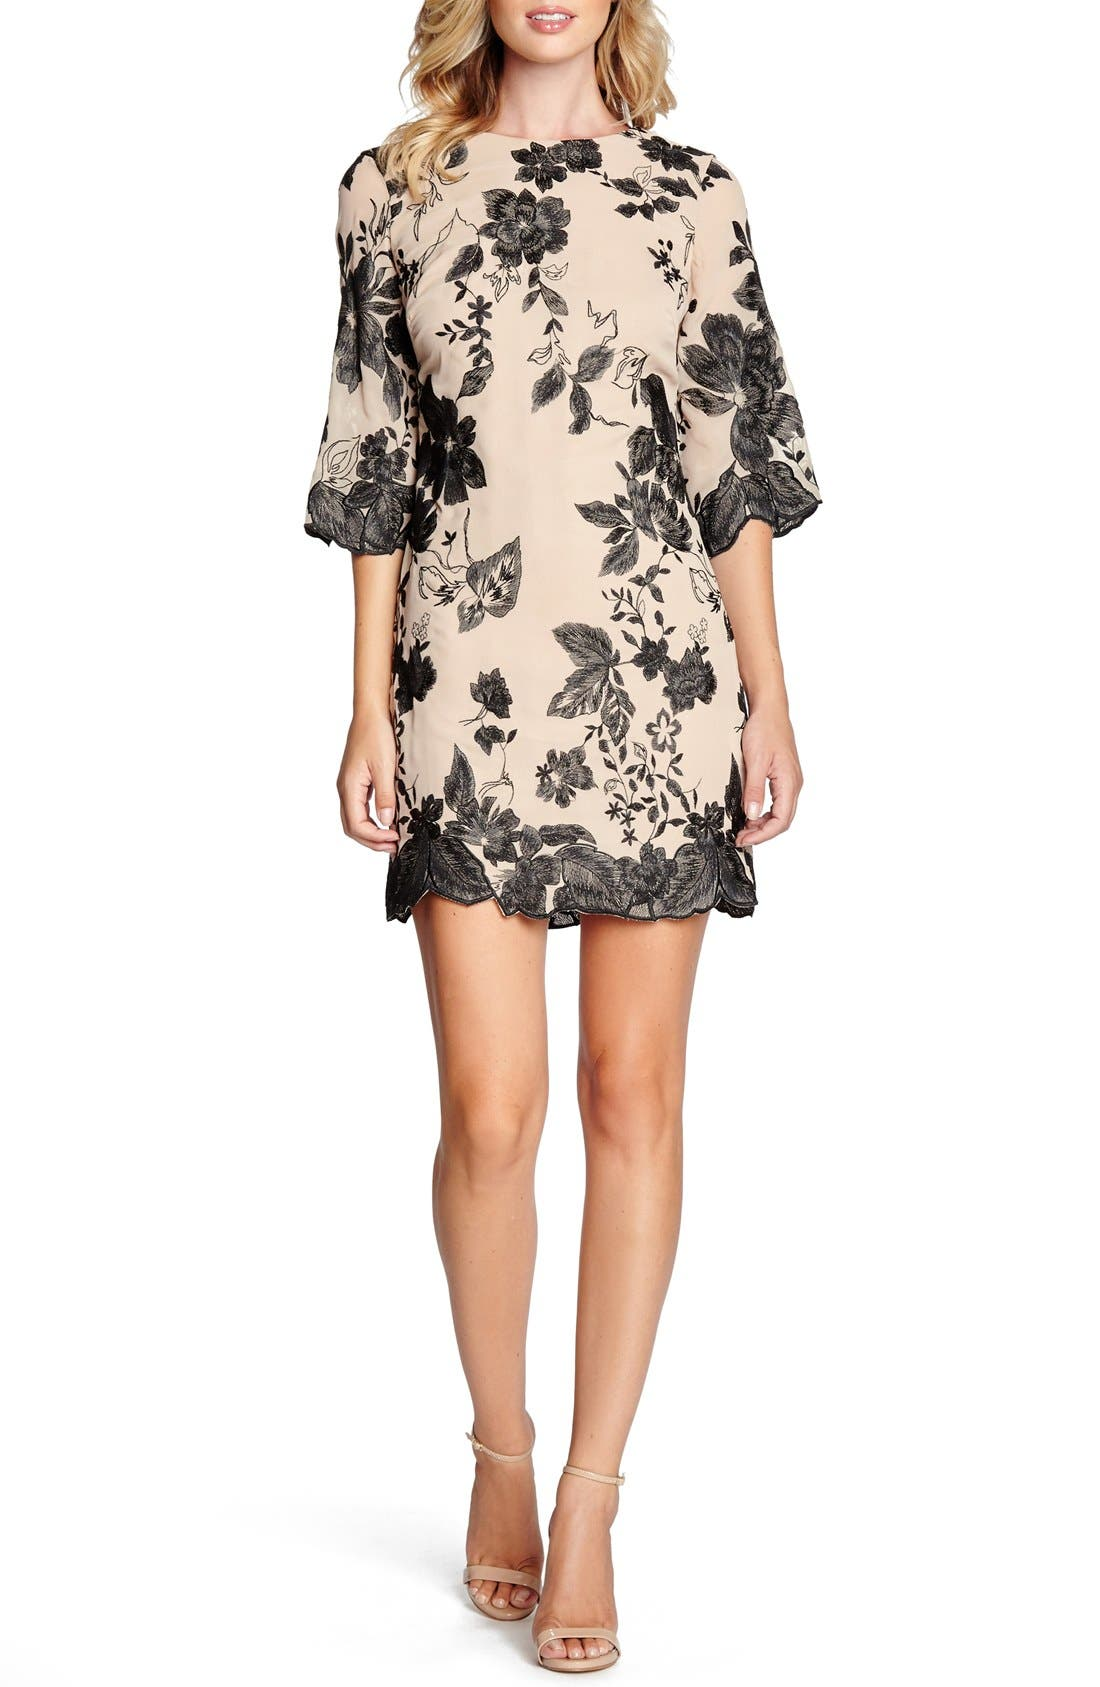 'Paige' Metallic Embroidered Chiffon Shift Dress,                             Alternate thumbnail 5, color,                             259